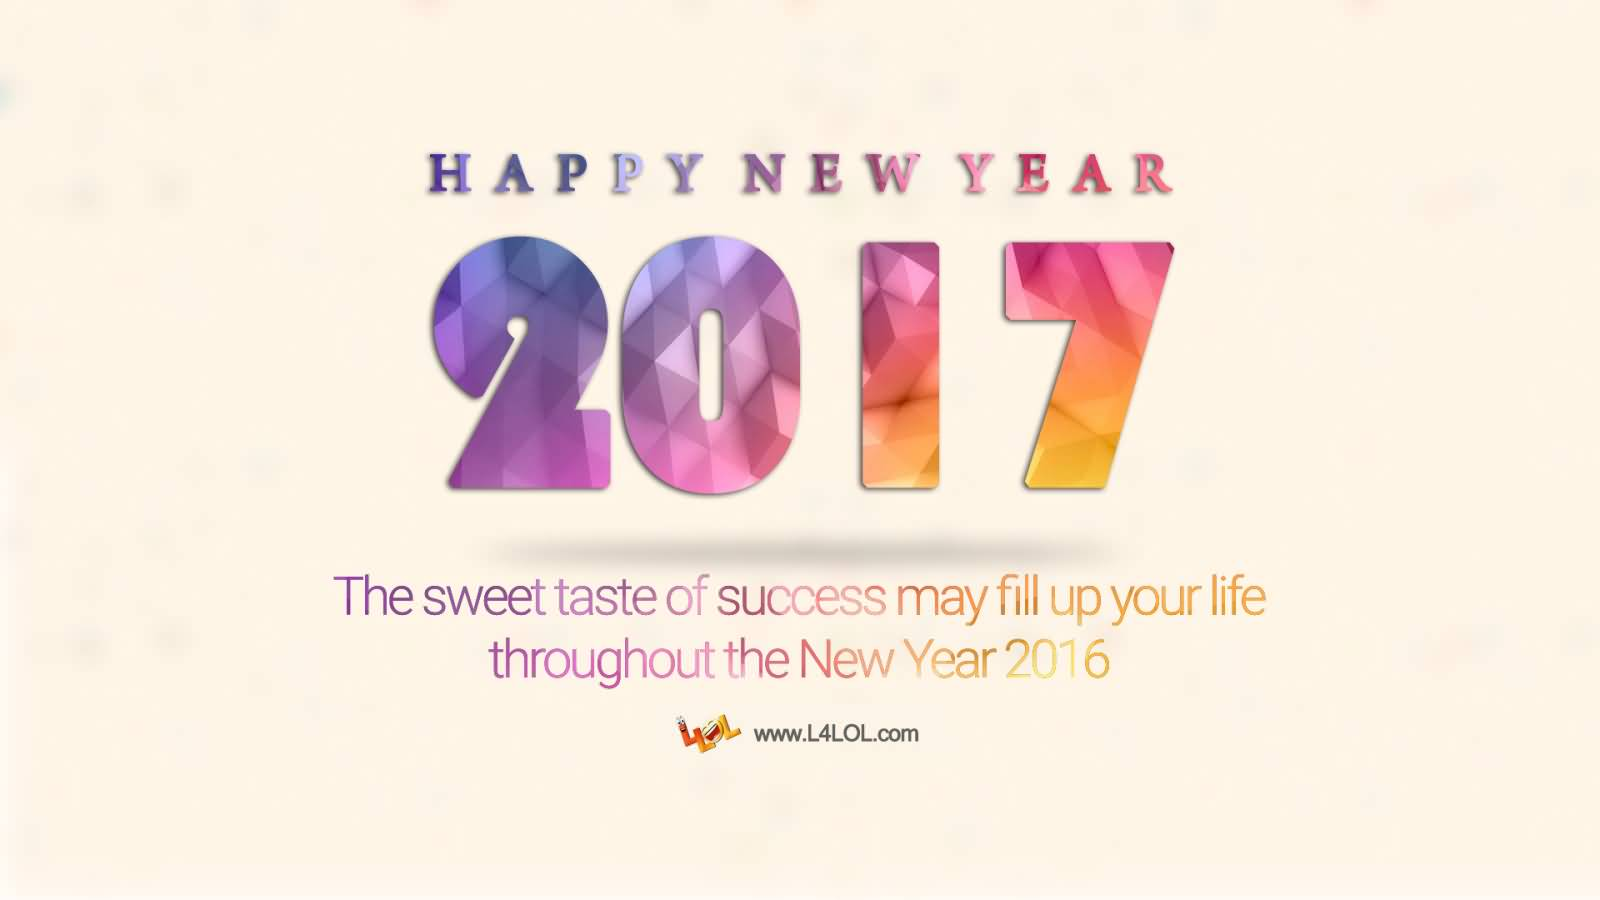 happy new year 2017 the sweet taste of success may fill you your life throughout the